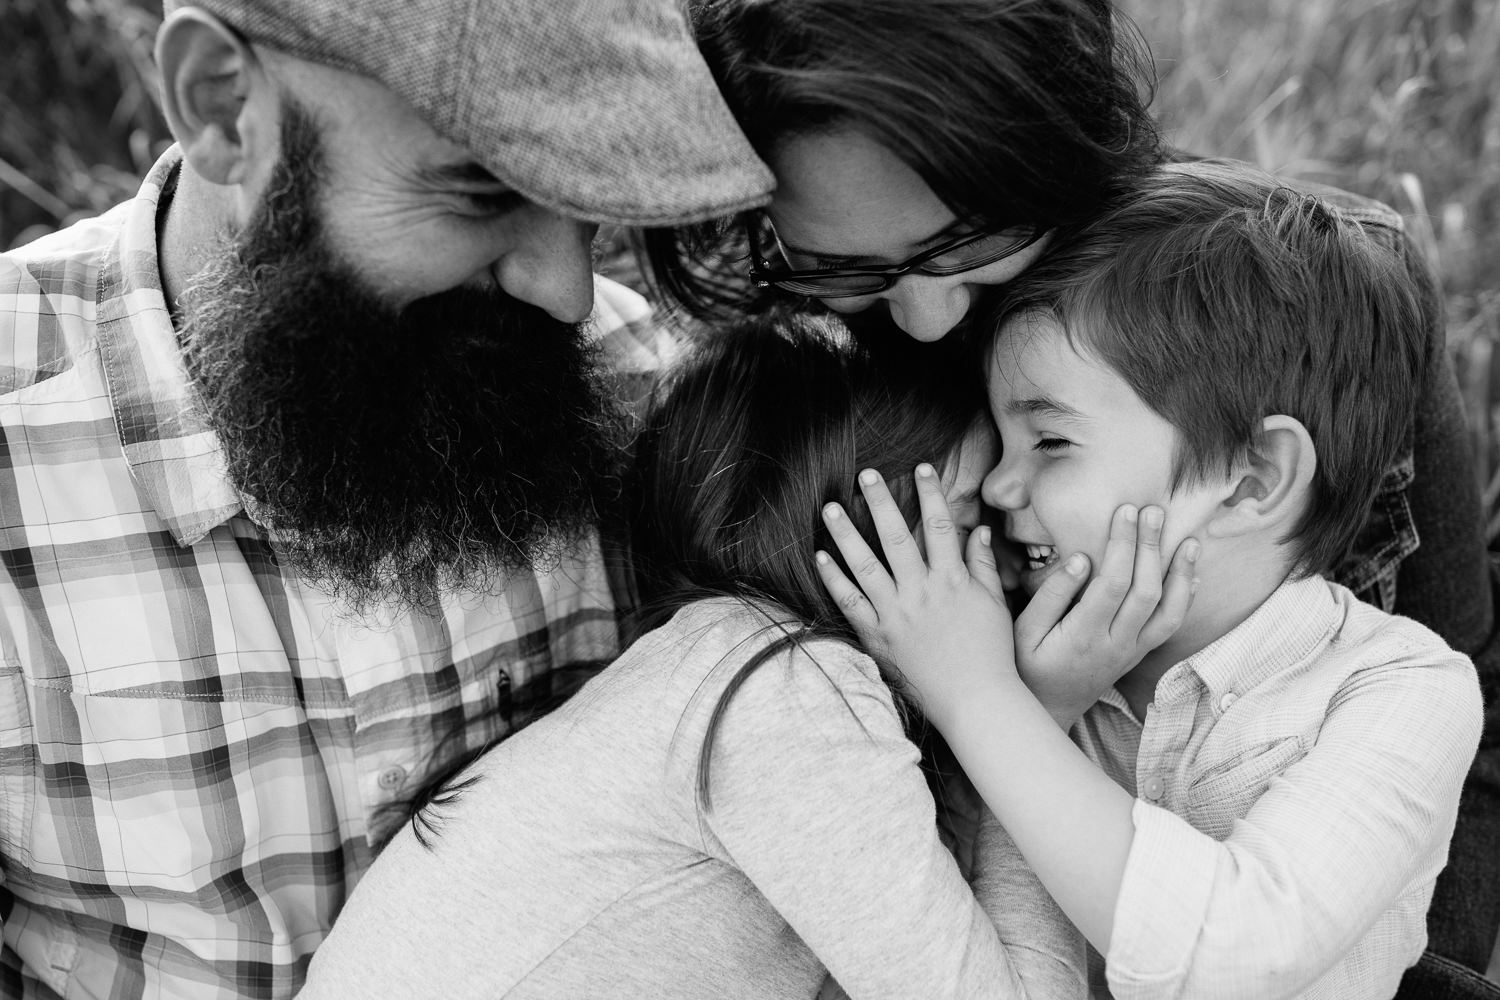 family of 4 sitting on park bench surrounded by tall grasses, 5 year old girl sitting on dad's lap, boy in mom's, snuggling, brother's hand on sister's face - Markham Lifestyle Photography